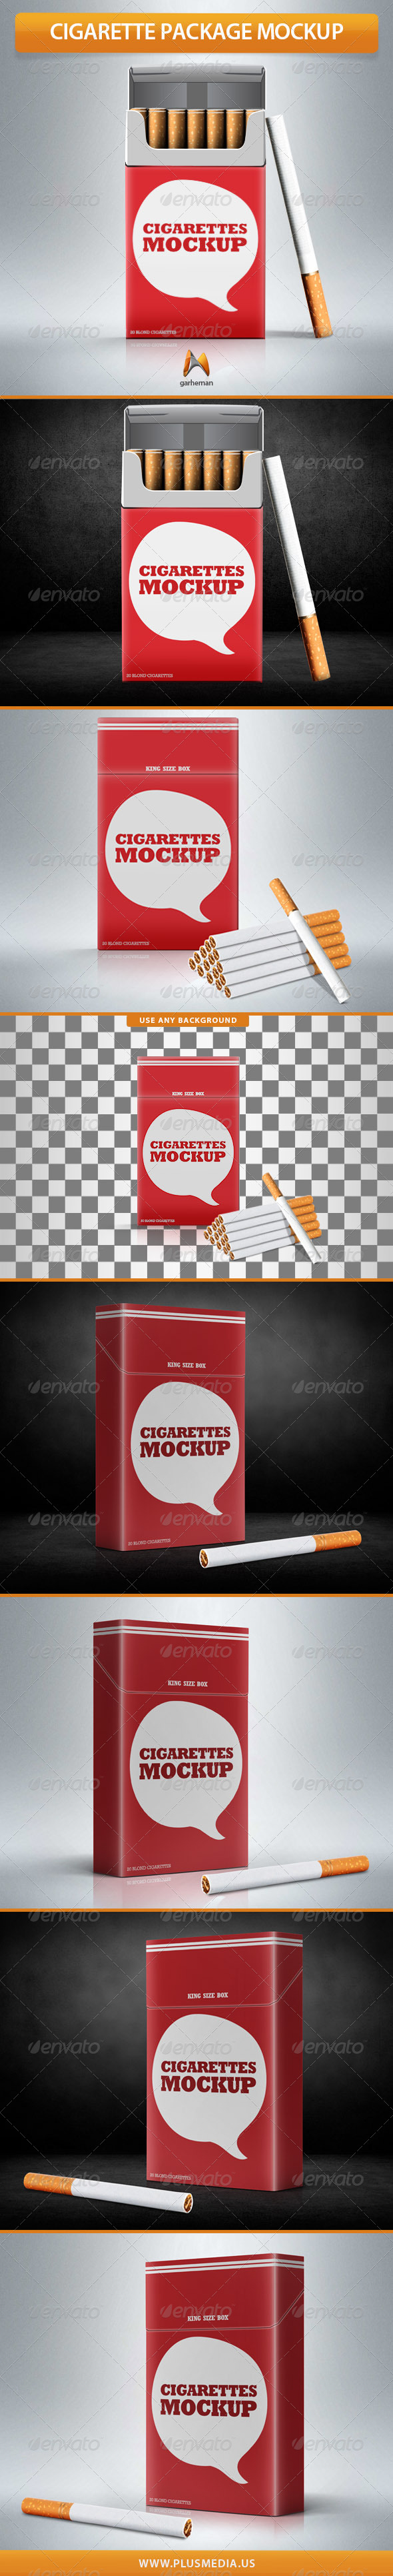 GraphicRiver Cigarette Package Mock-Up 7486243